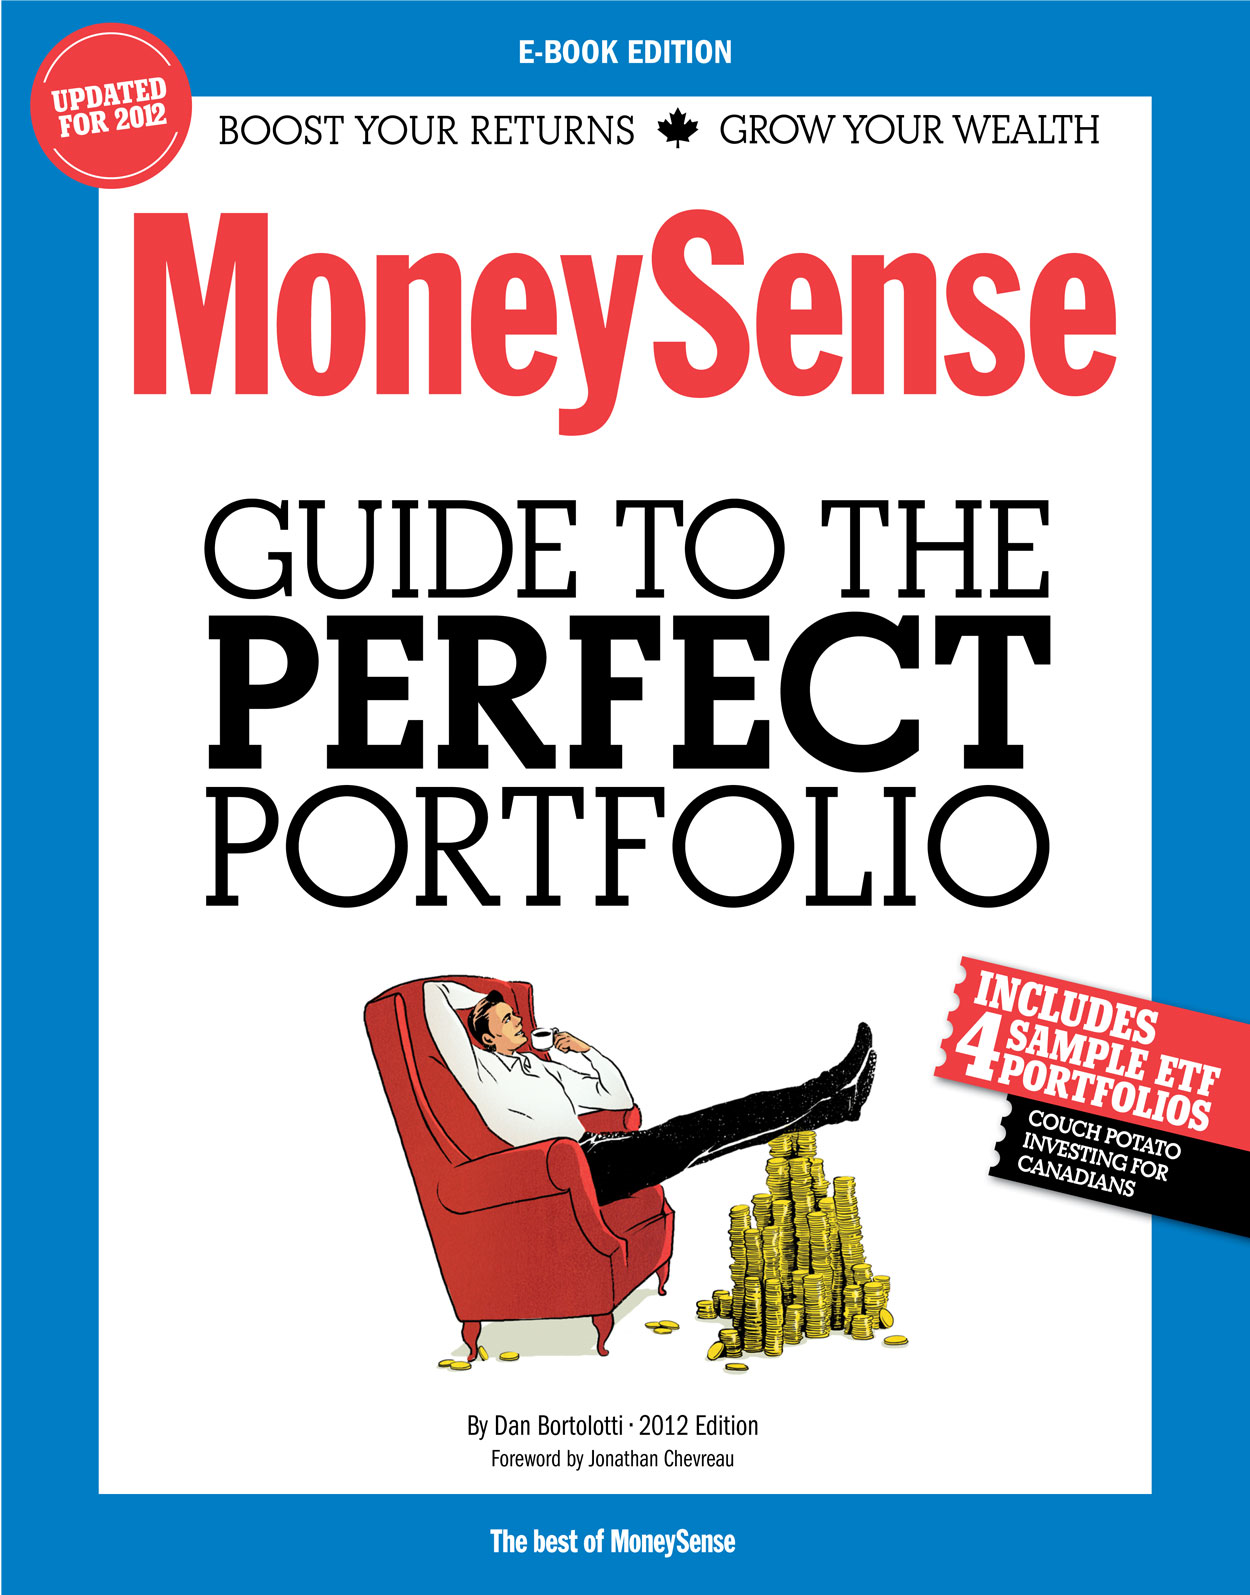 The MoneySense Guide to the Perfect Portfolio